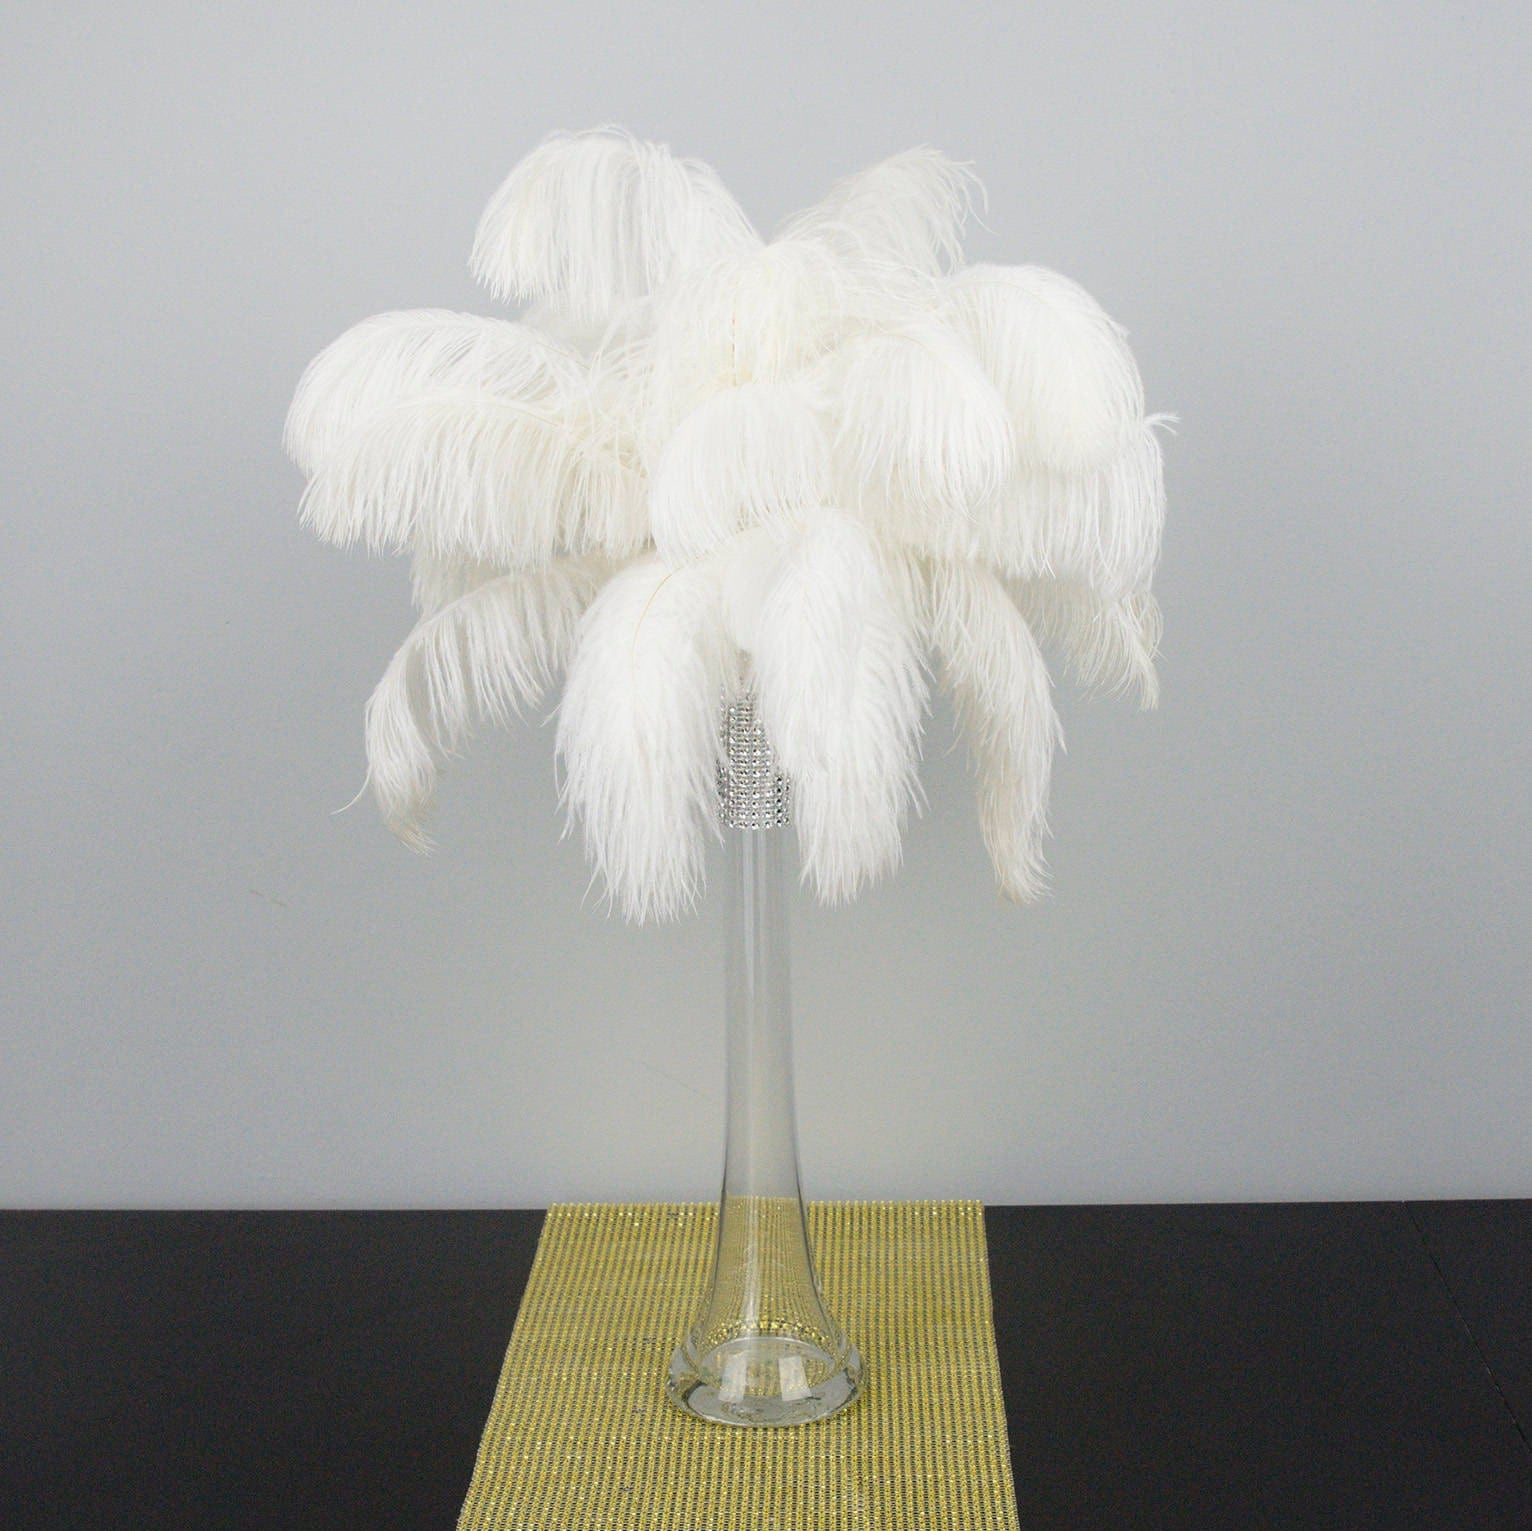 Tall ostrich feather centerpiece kits with round